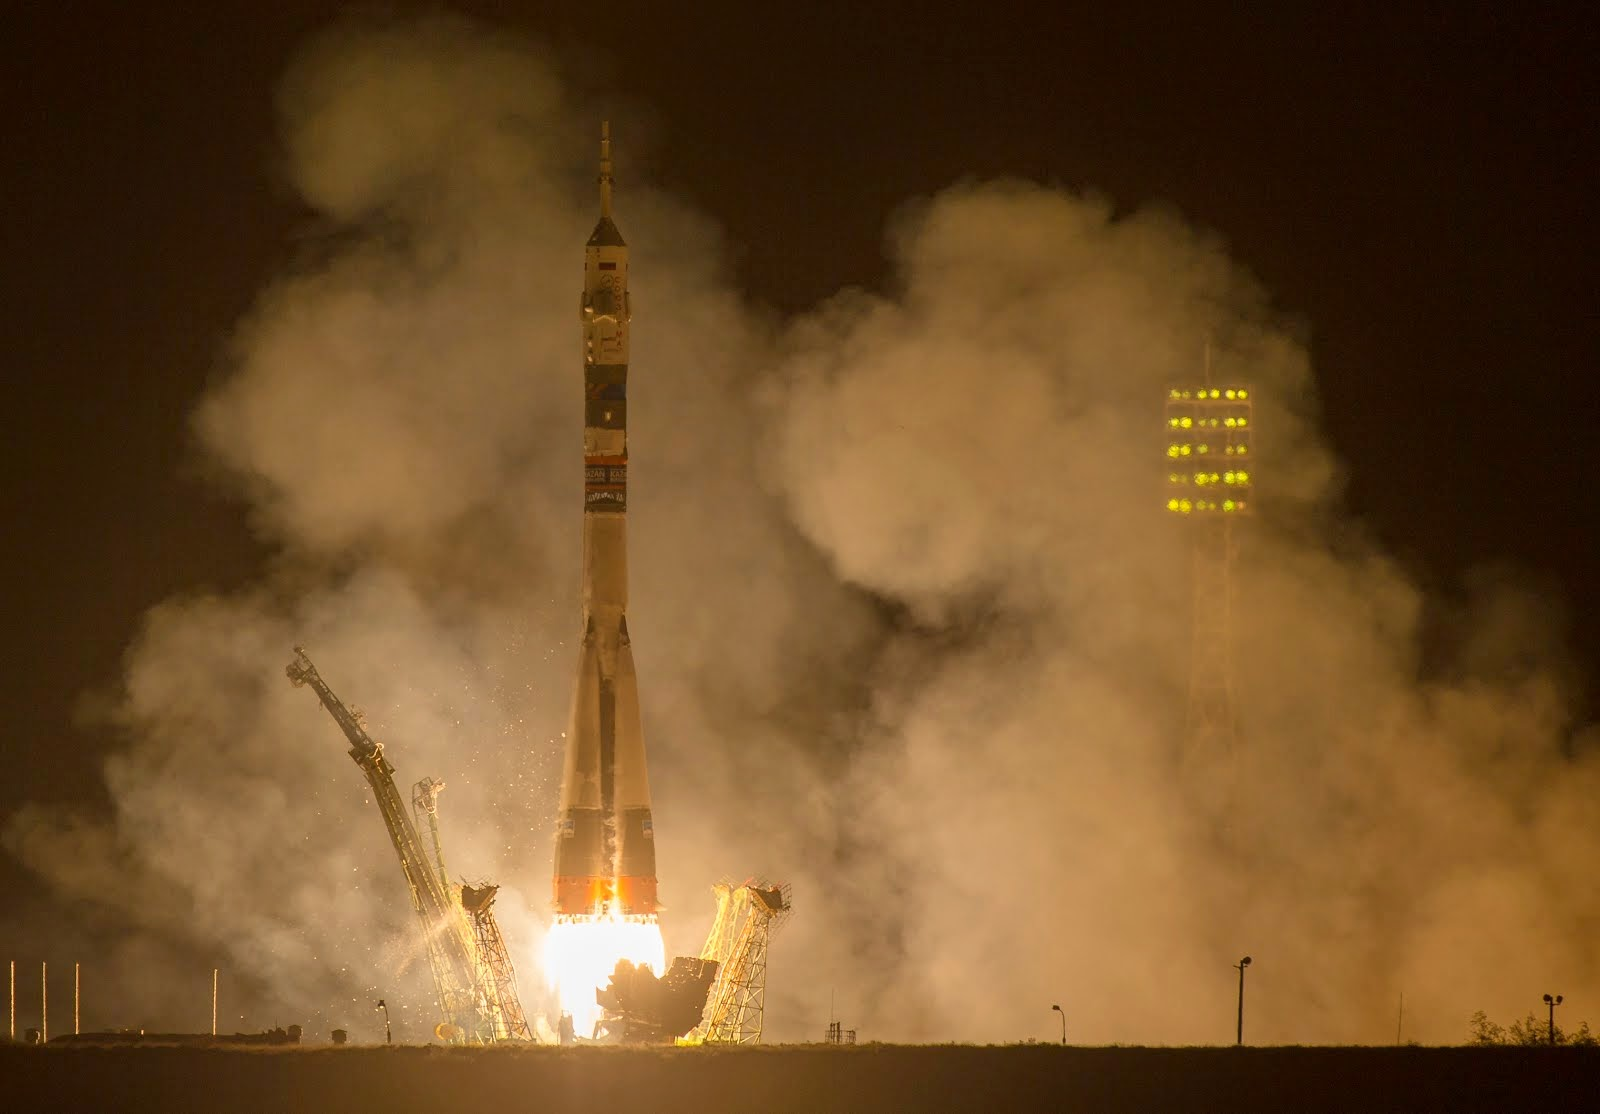 EXPEDITION 41 CREW LAUNCHES TO ISS